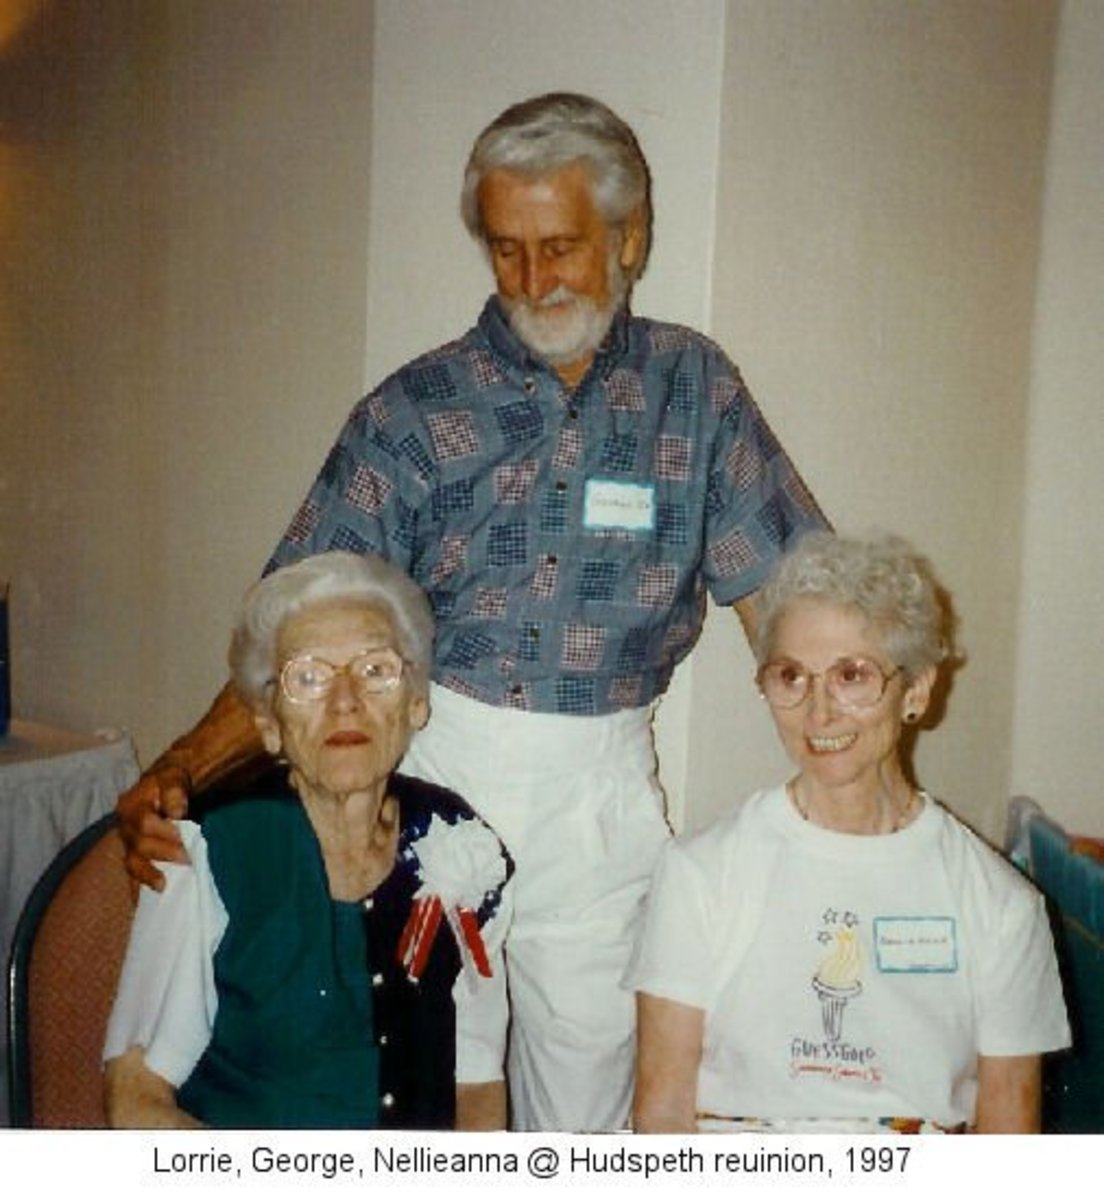 Lorrie, George, her late husband and Nellieanna,